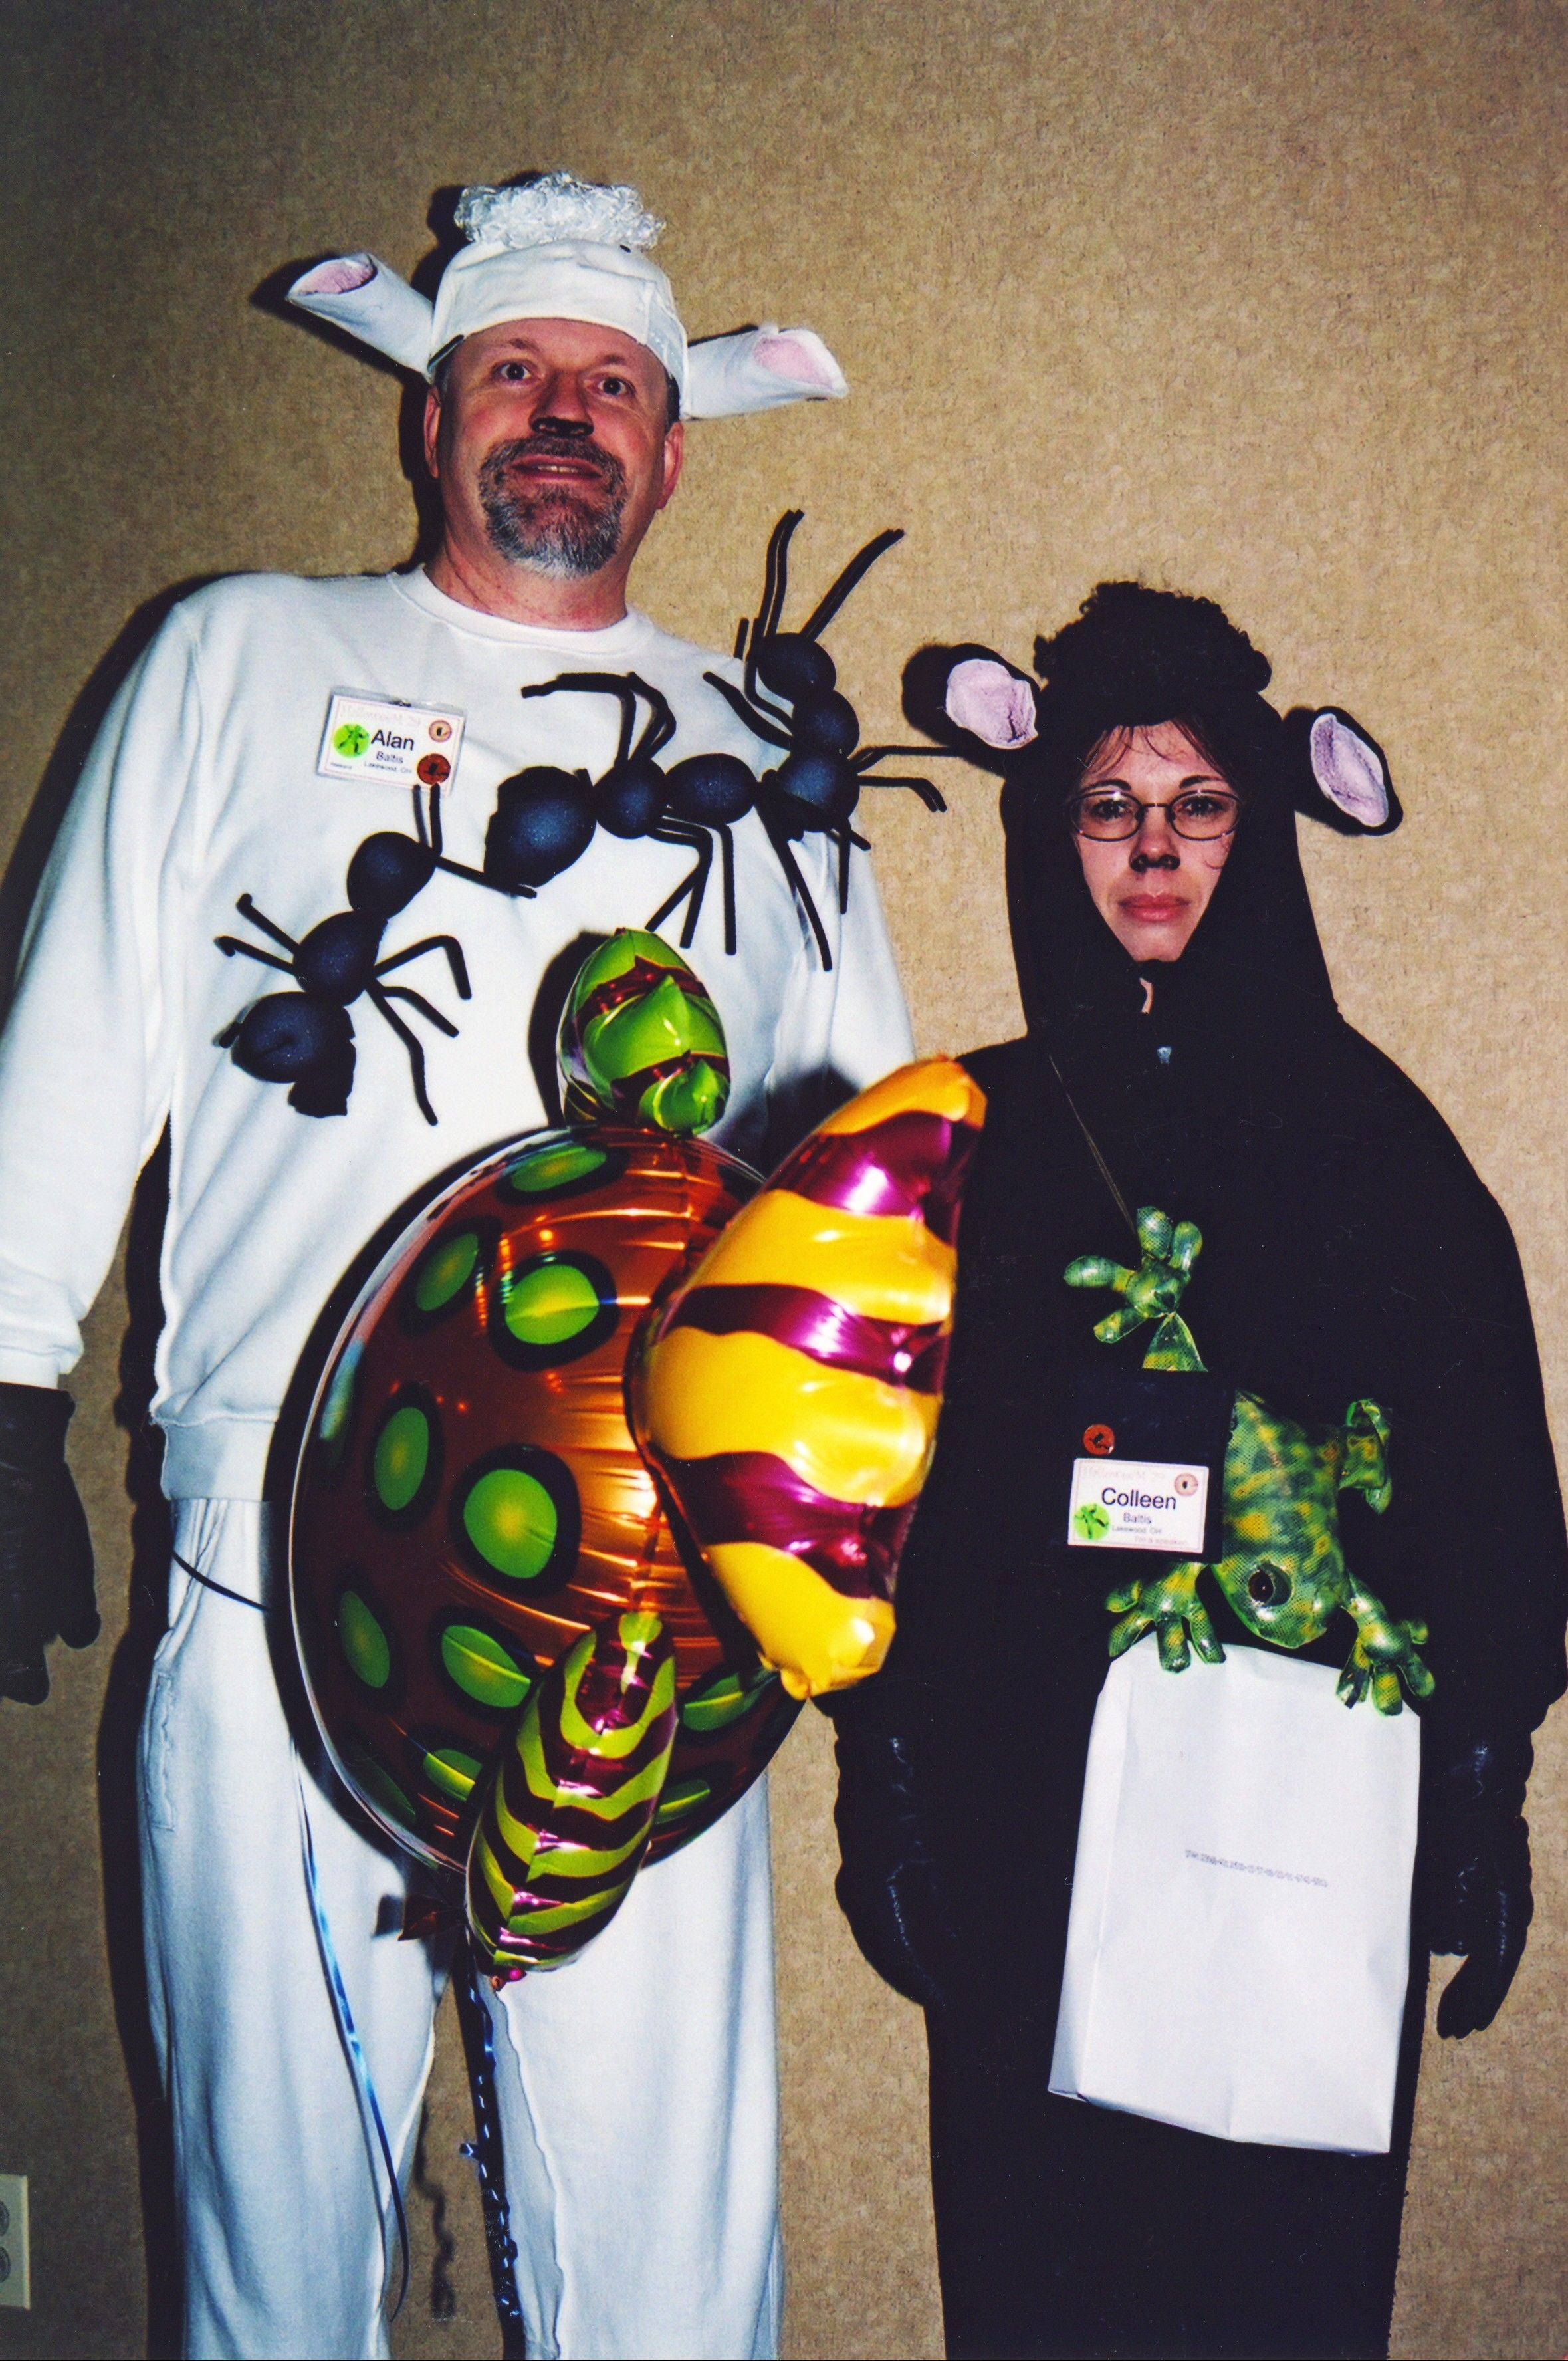 Two sheep, perched ants, a toad and a ream of paper walk into the local Mensa club's annual HalloweeM meeting of the minds for smart people. You'll have to read the column to see the deciphering for this costume pun.